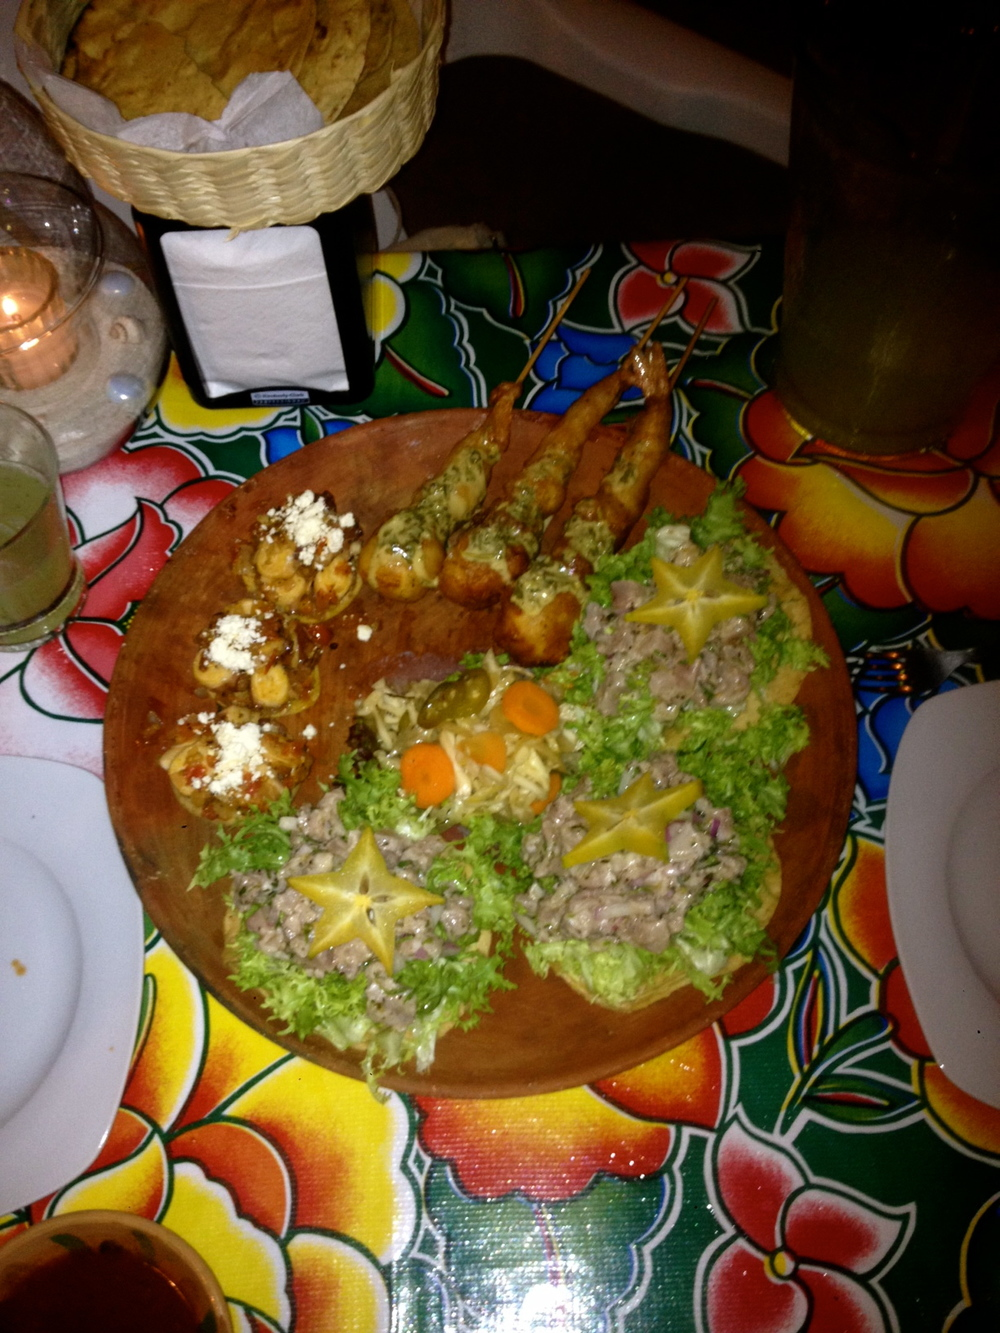 An amazing plate of fresh atun, tuna tostadas, pulpo, octopus sopes and a cameron, prawn paired with a local quseo crown, deep fried.